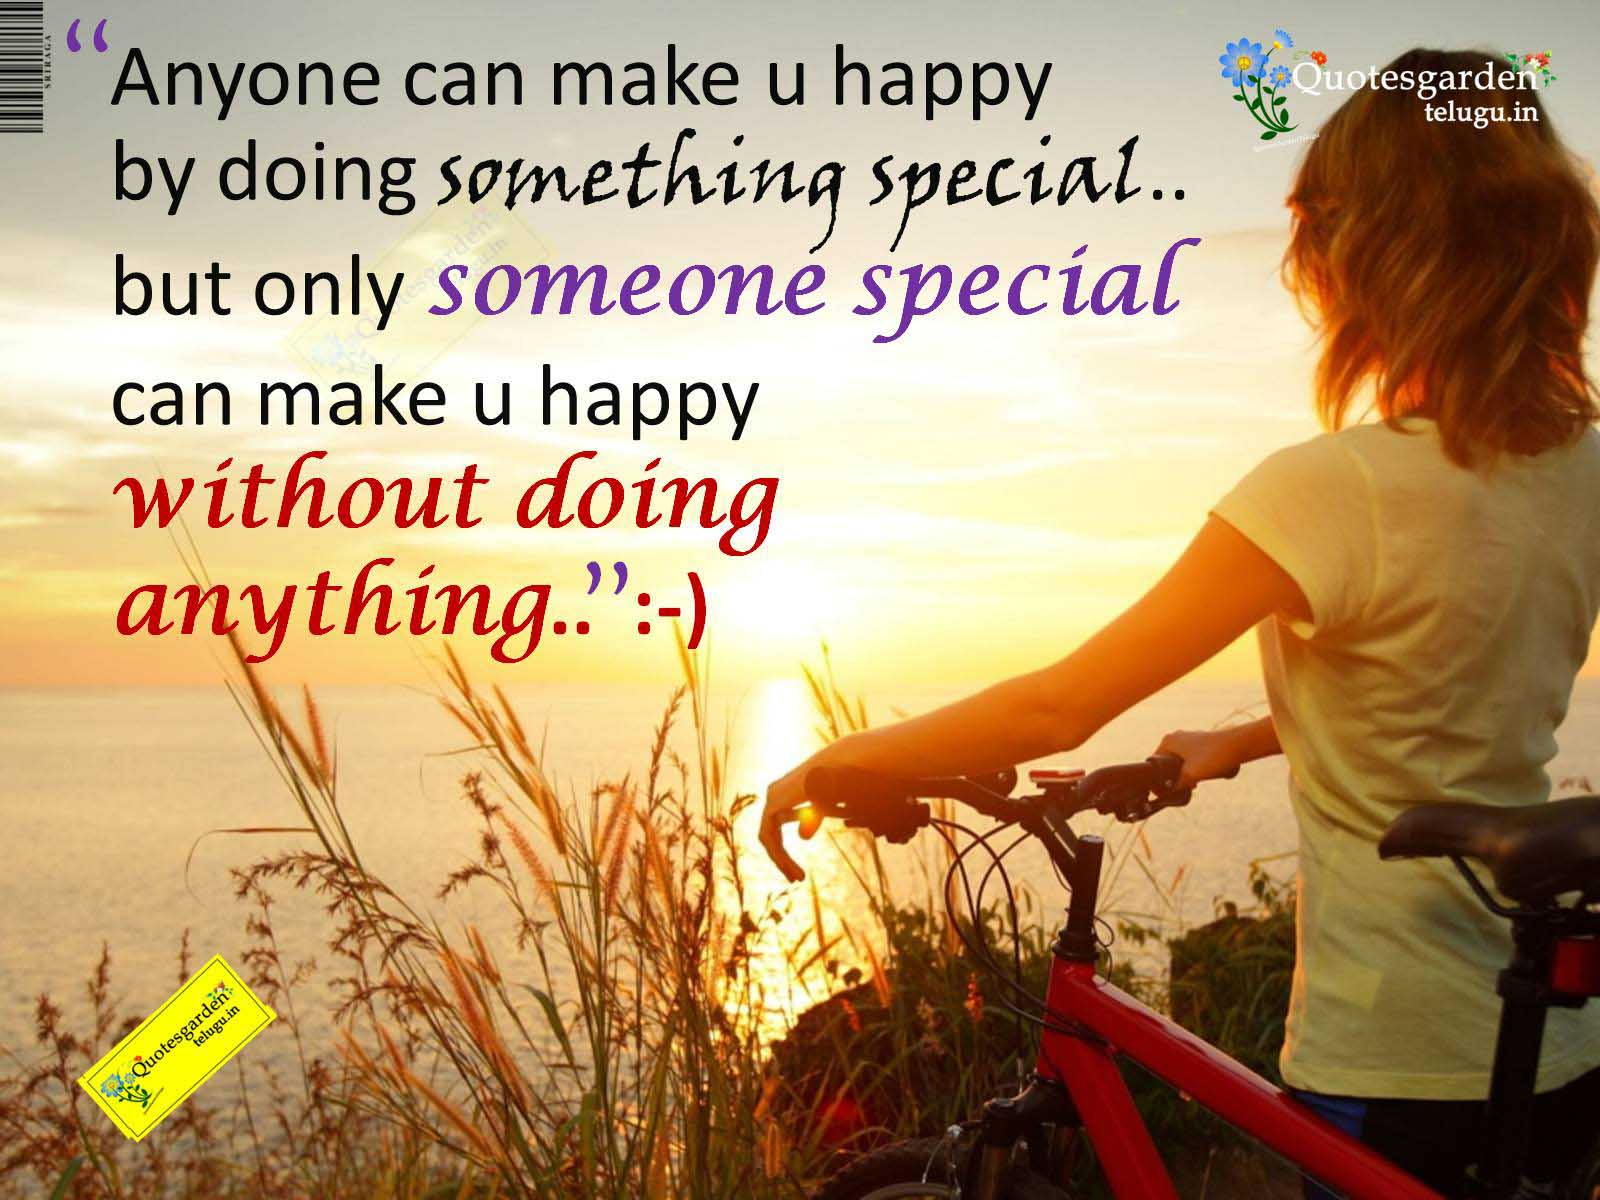 Heart Touching Wallpaper With Quotes In Hindi Latest Heart Touching Love Thoughts And Feelings 640